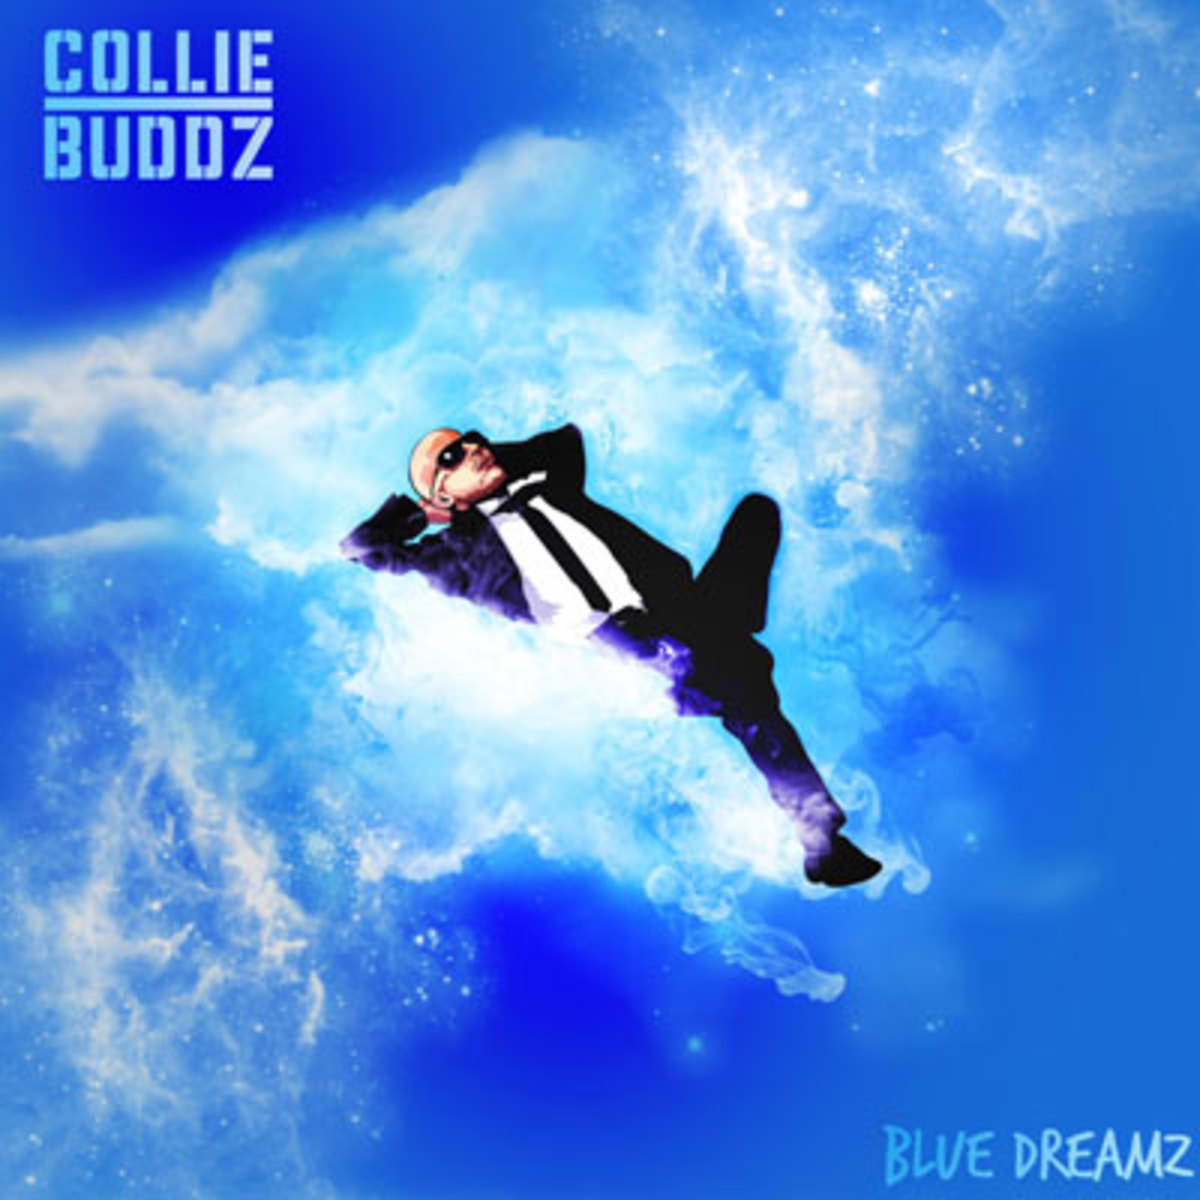 collie-buddz-blue-dreamz.jpg